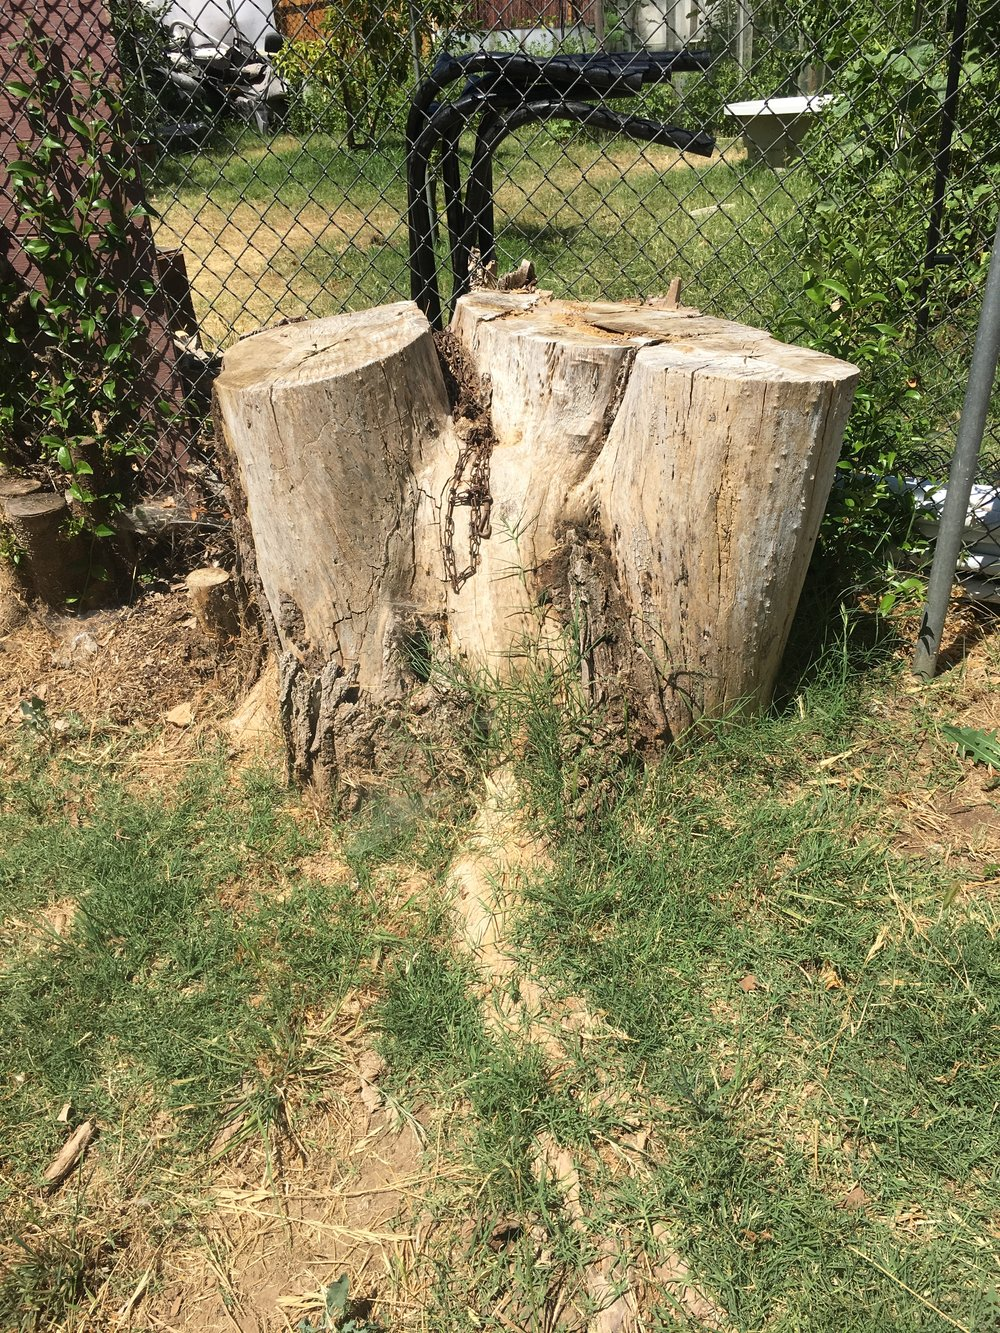 - Here's the really big stump, all snuggled up to the chain link fence. There's also a slightly smaller stump in the middle of the yard, but I don't have a good before pic of it.